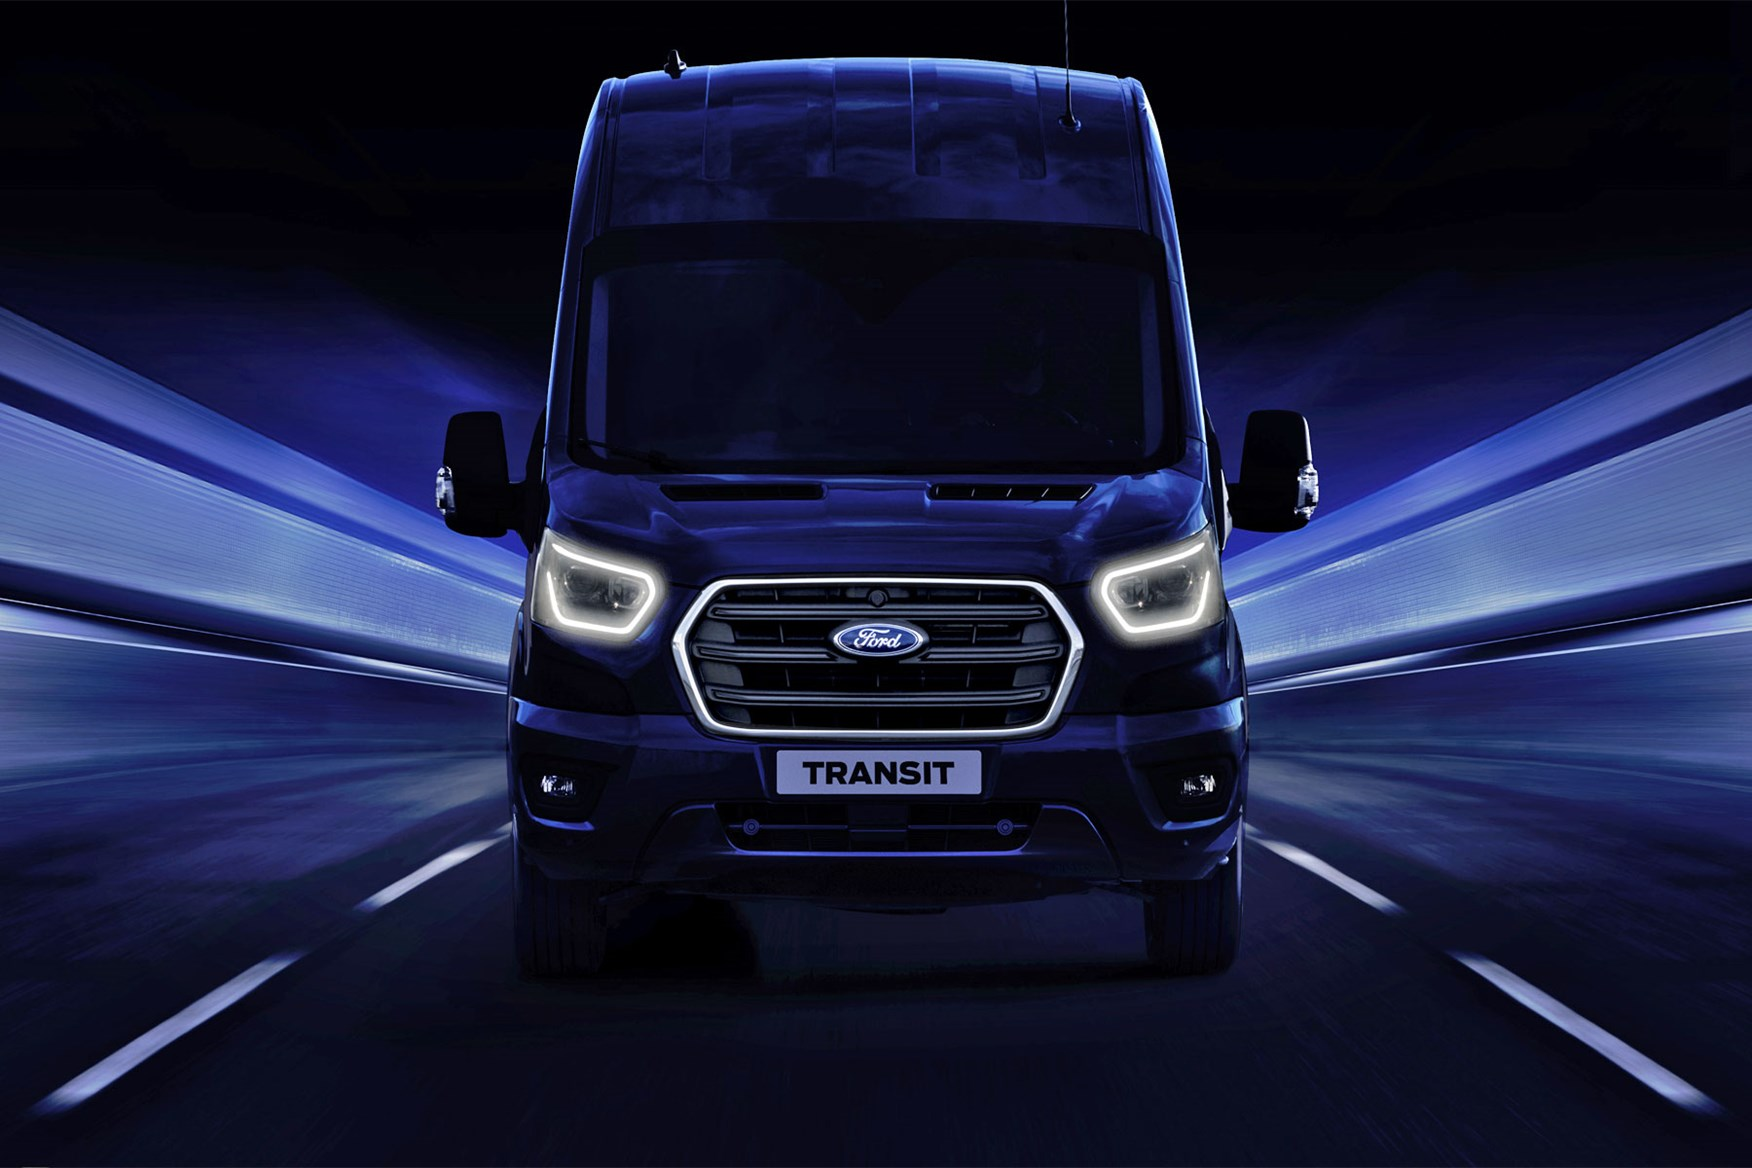 New 2019 Ford Transit facelift - latest details from the ...